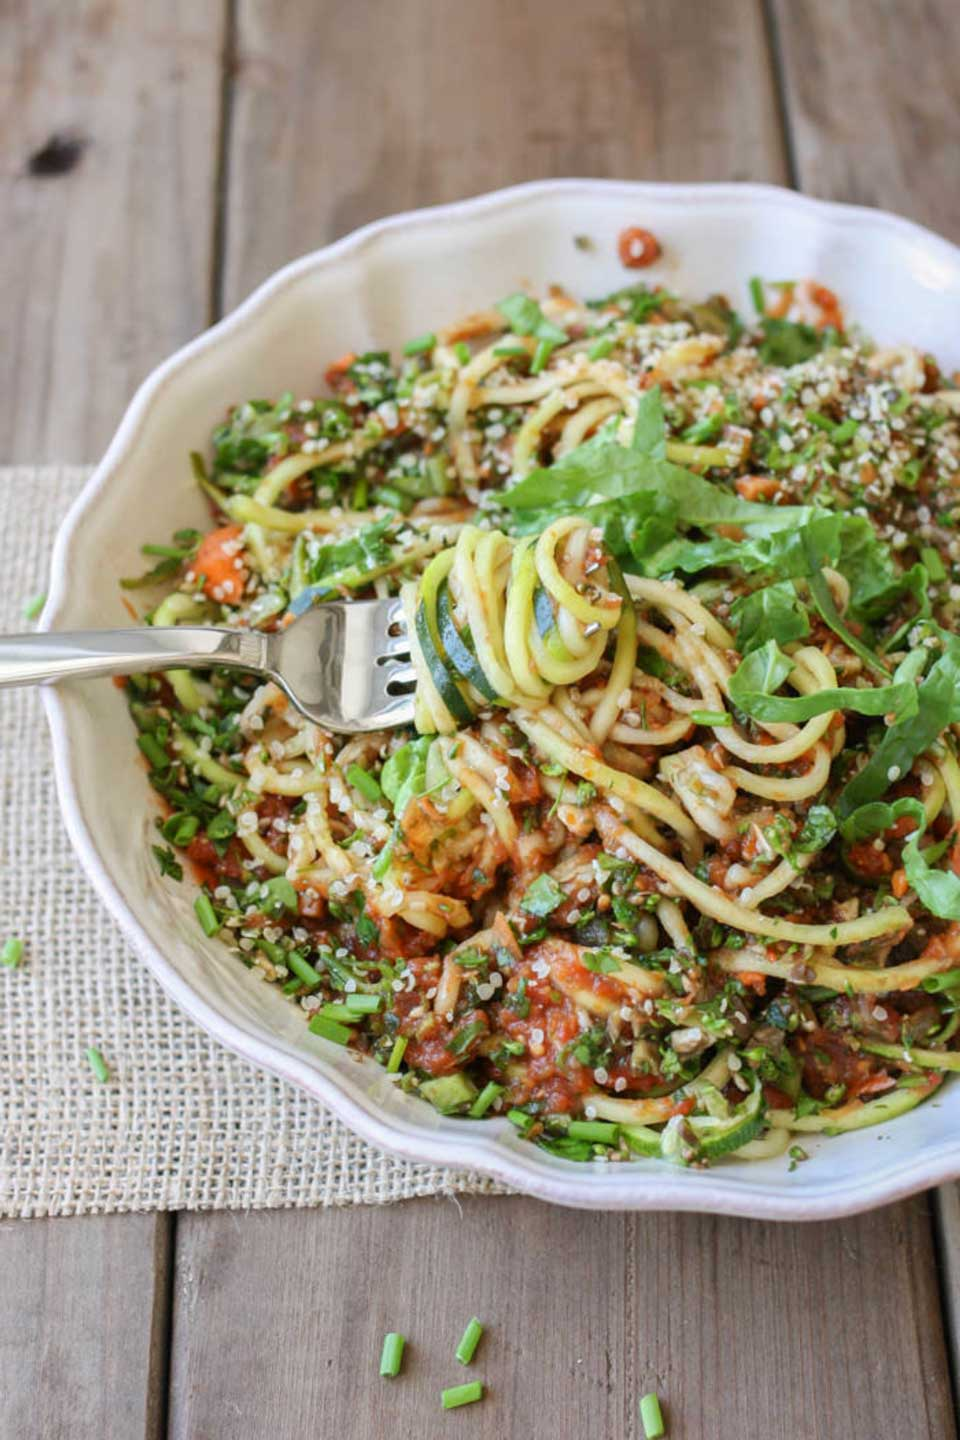 33 Game-Changing, Healthy Zoodles (Zucchini Noodles) Recipes - Two Healthy Kitchens